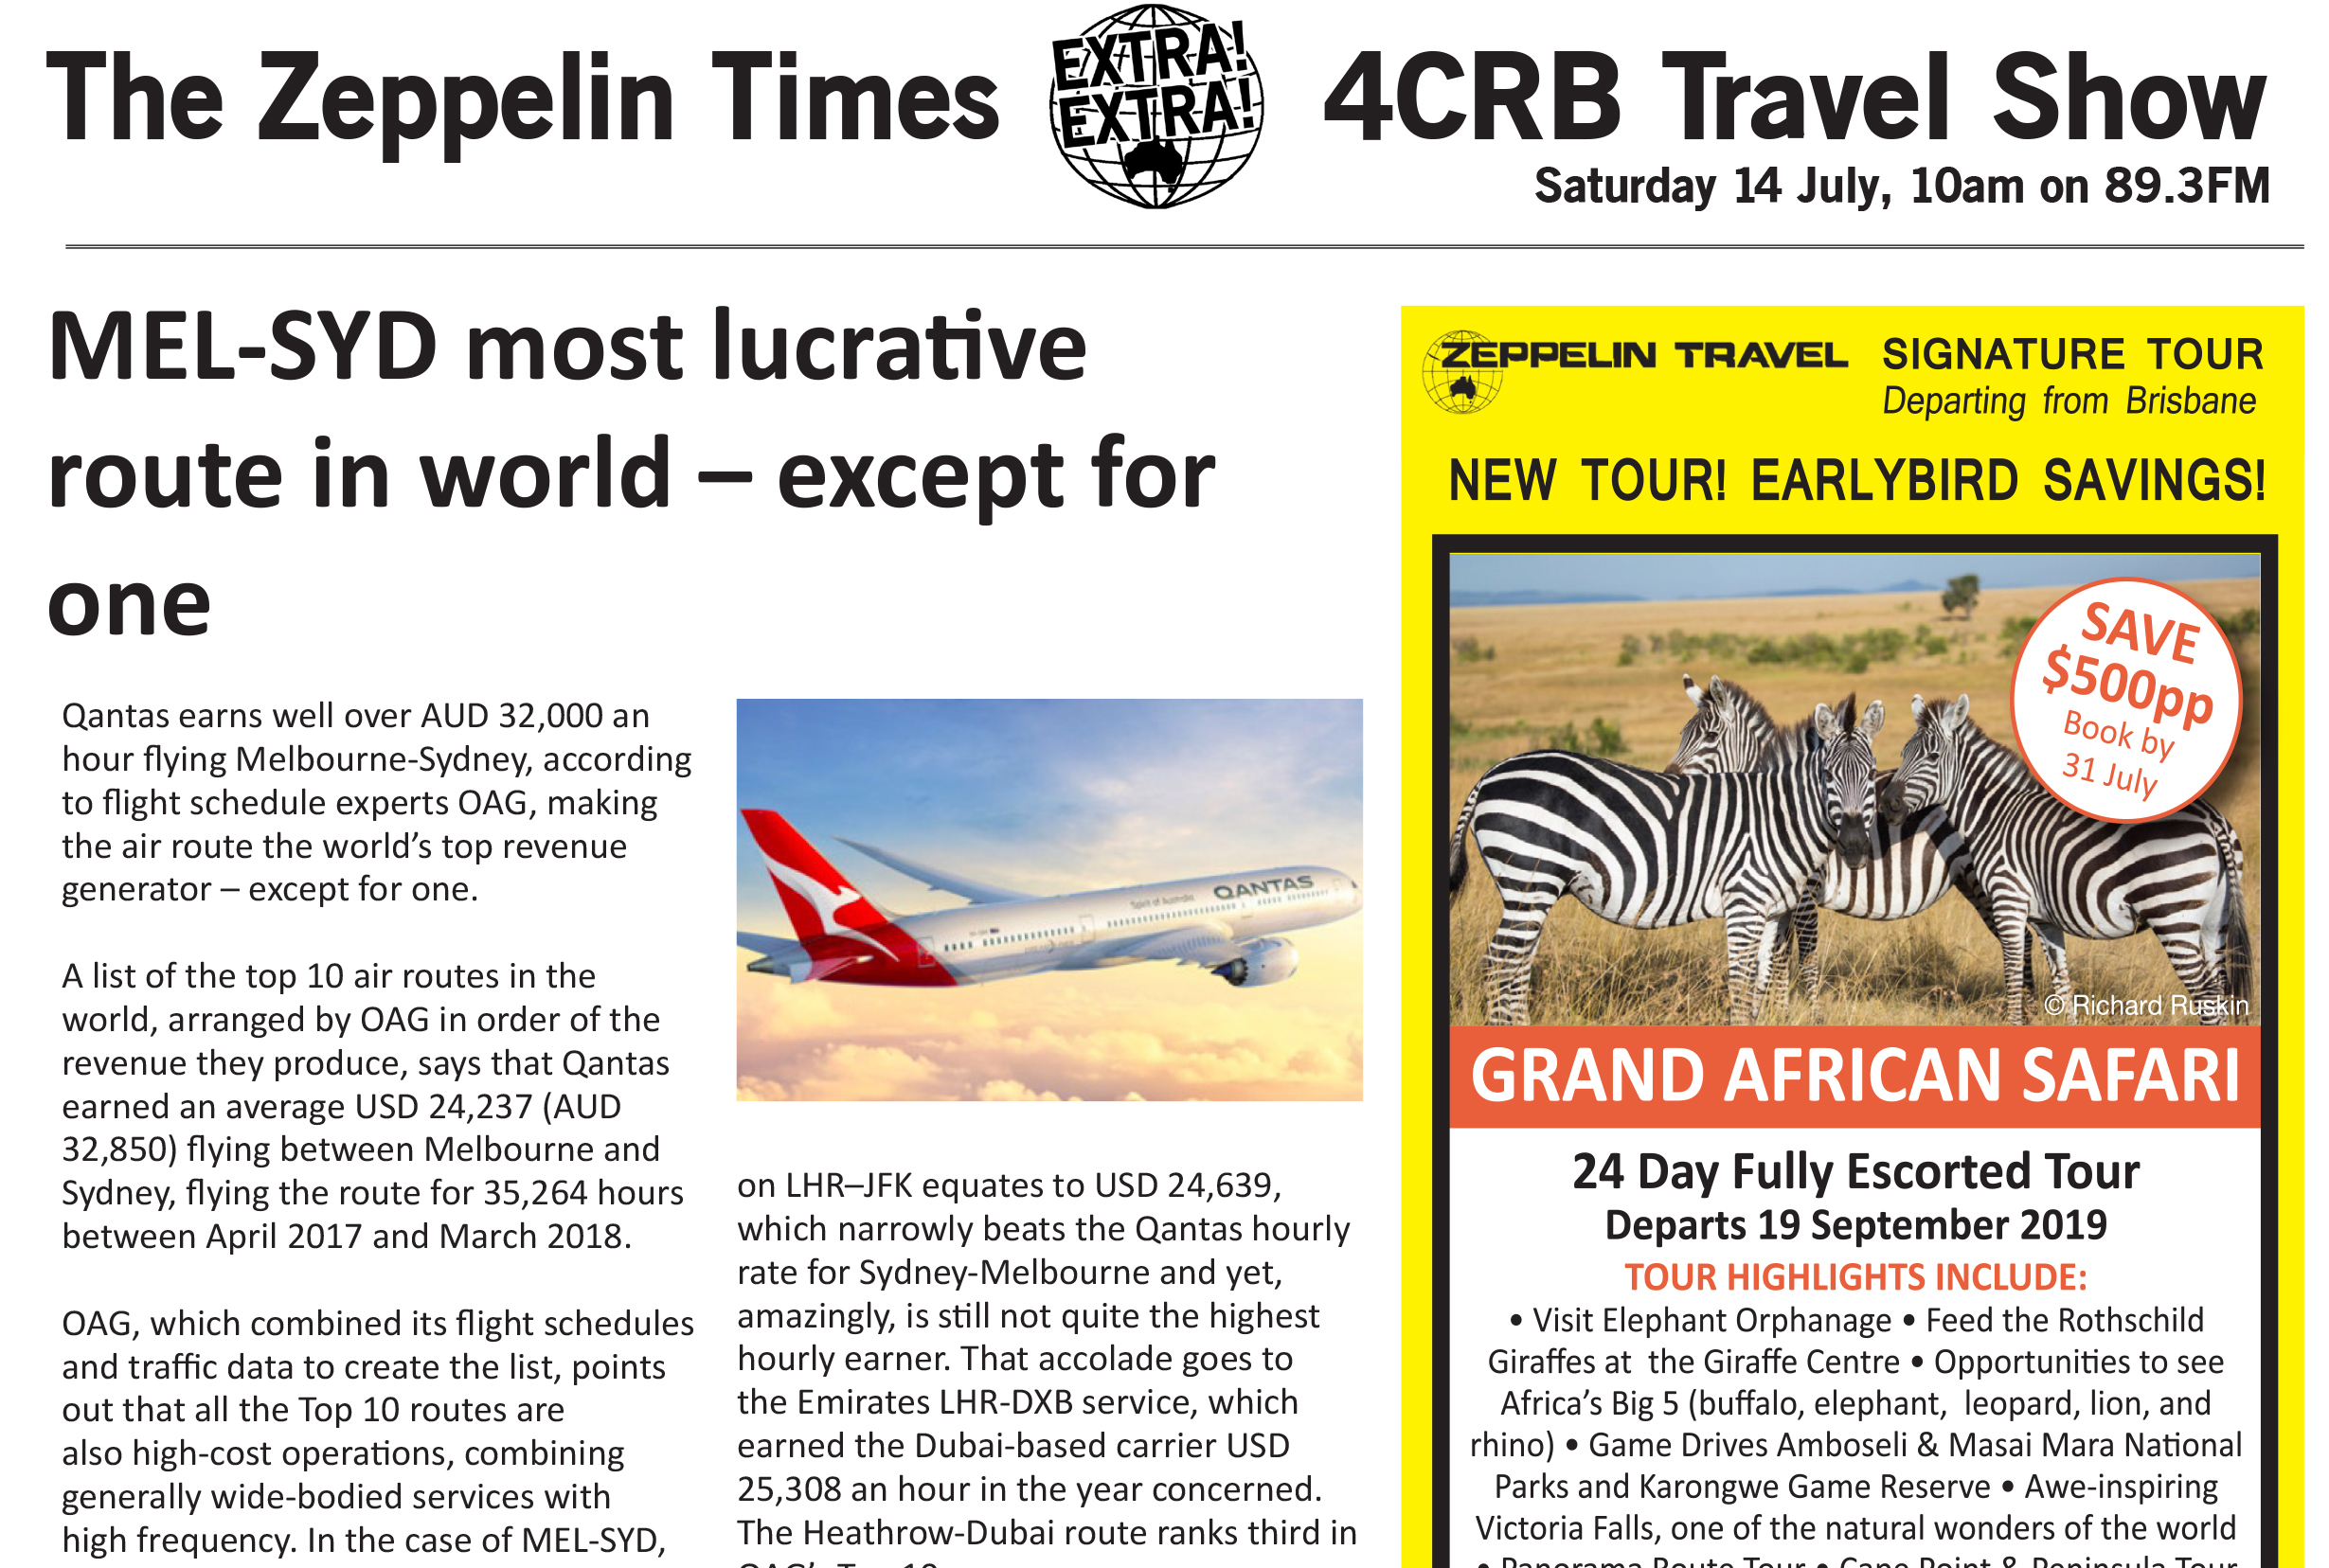 The Zeppelin Times 14 July 4CRB